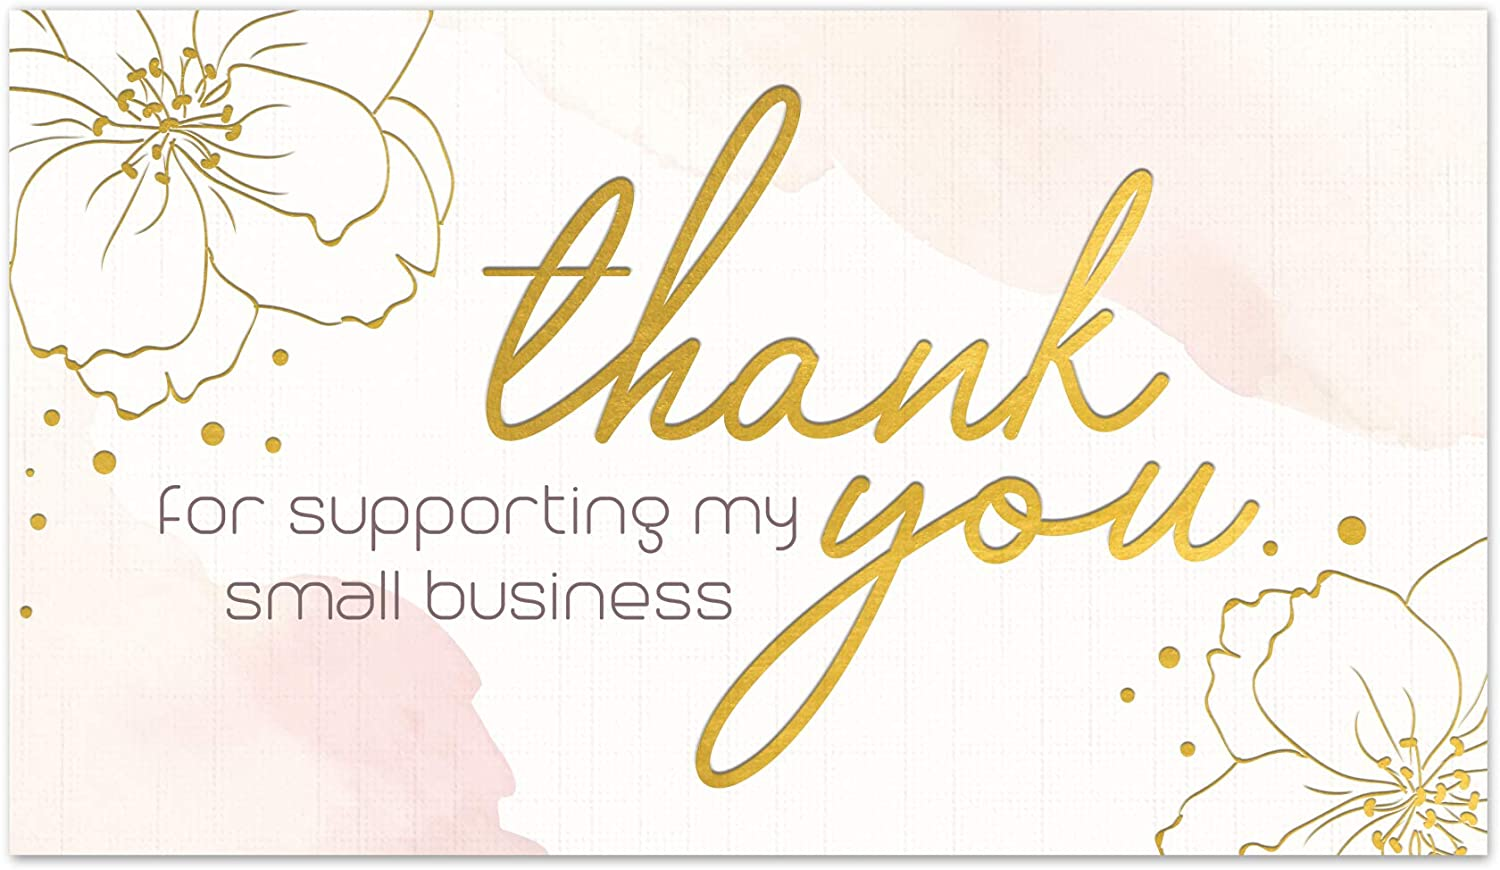 140 2021 Thank You For Supporting My Business Lo Premium Cards Very popular Small